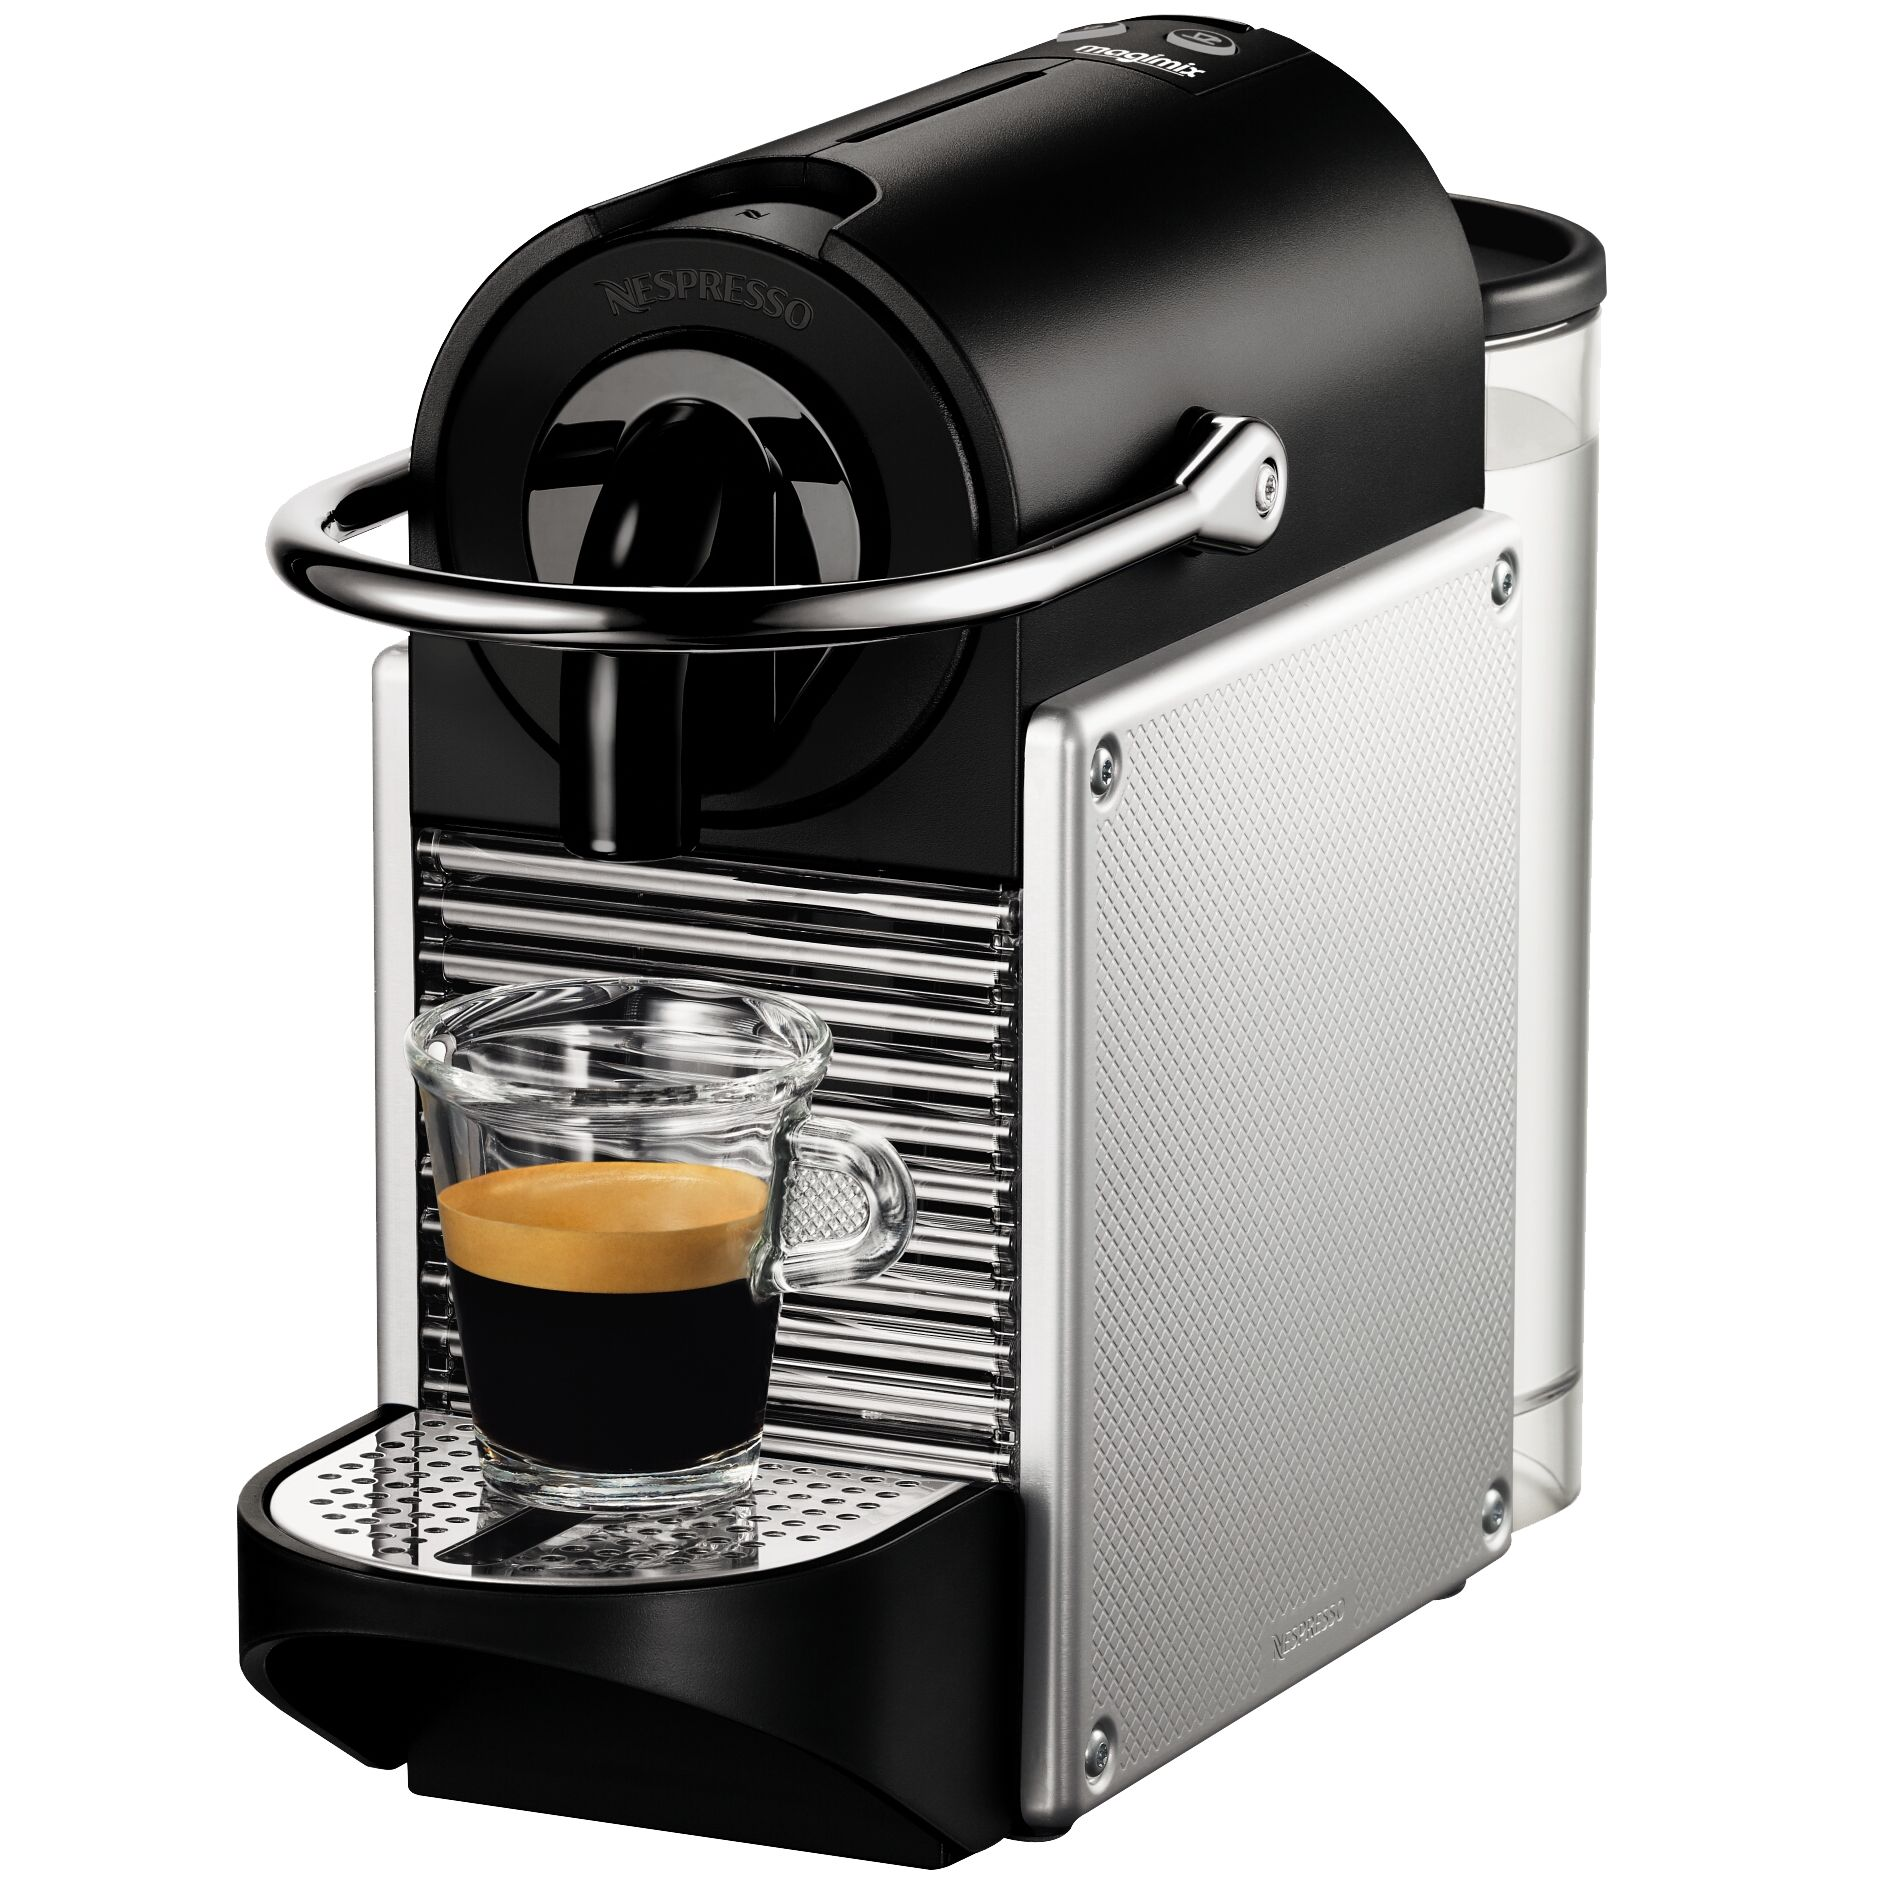 Electronic Coffee Machines Capsules nespresso pizza travel spain food post 2 spanish coffee